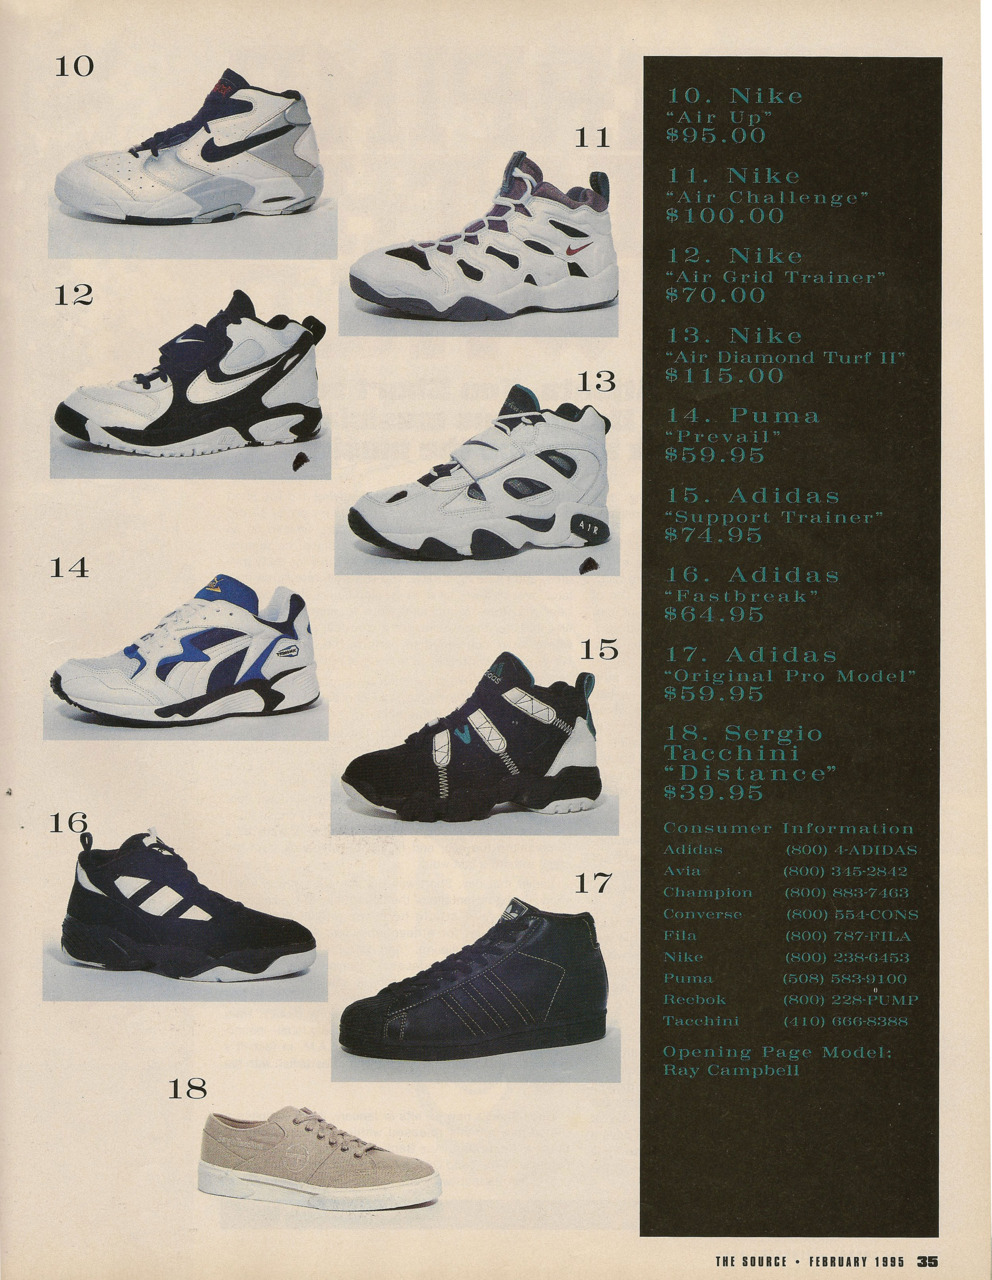 18 New Sneakers To Get You Live In '95 2.jpg